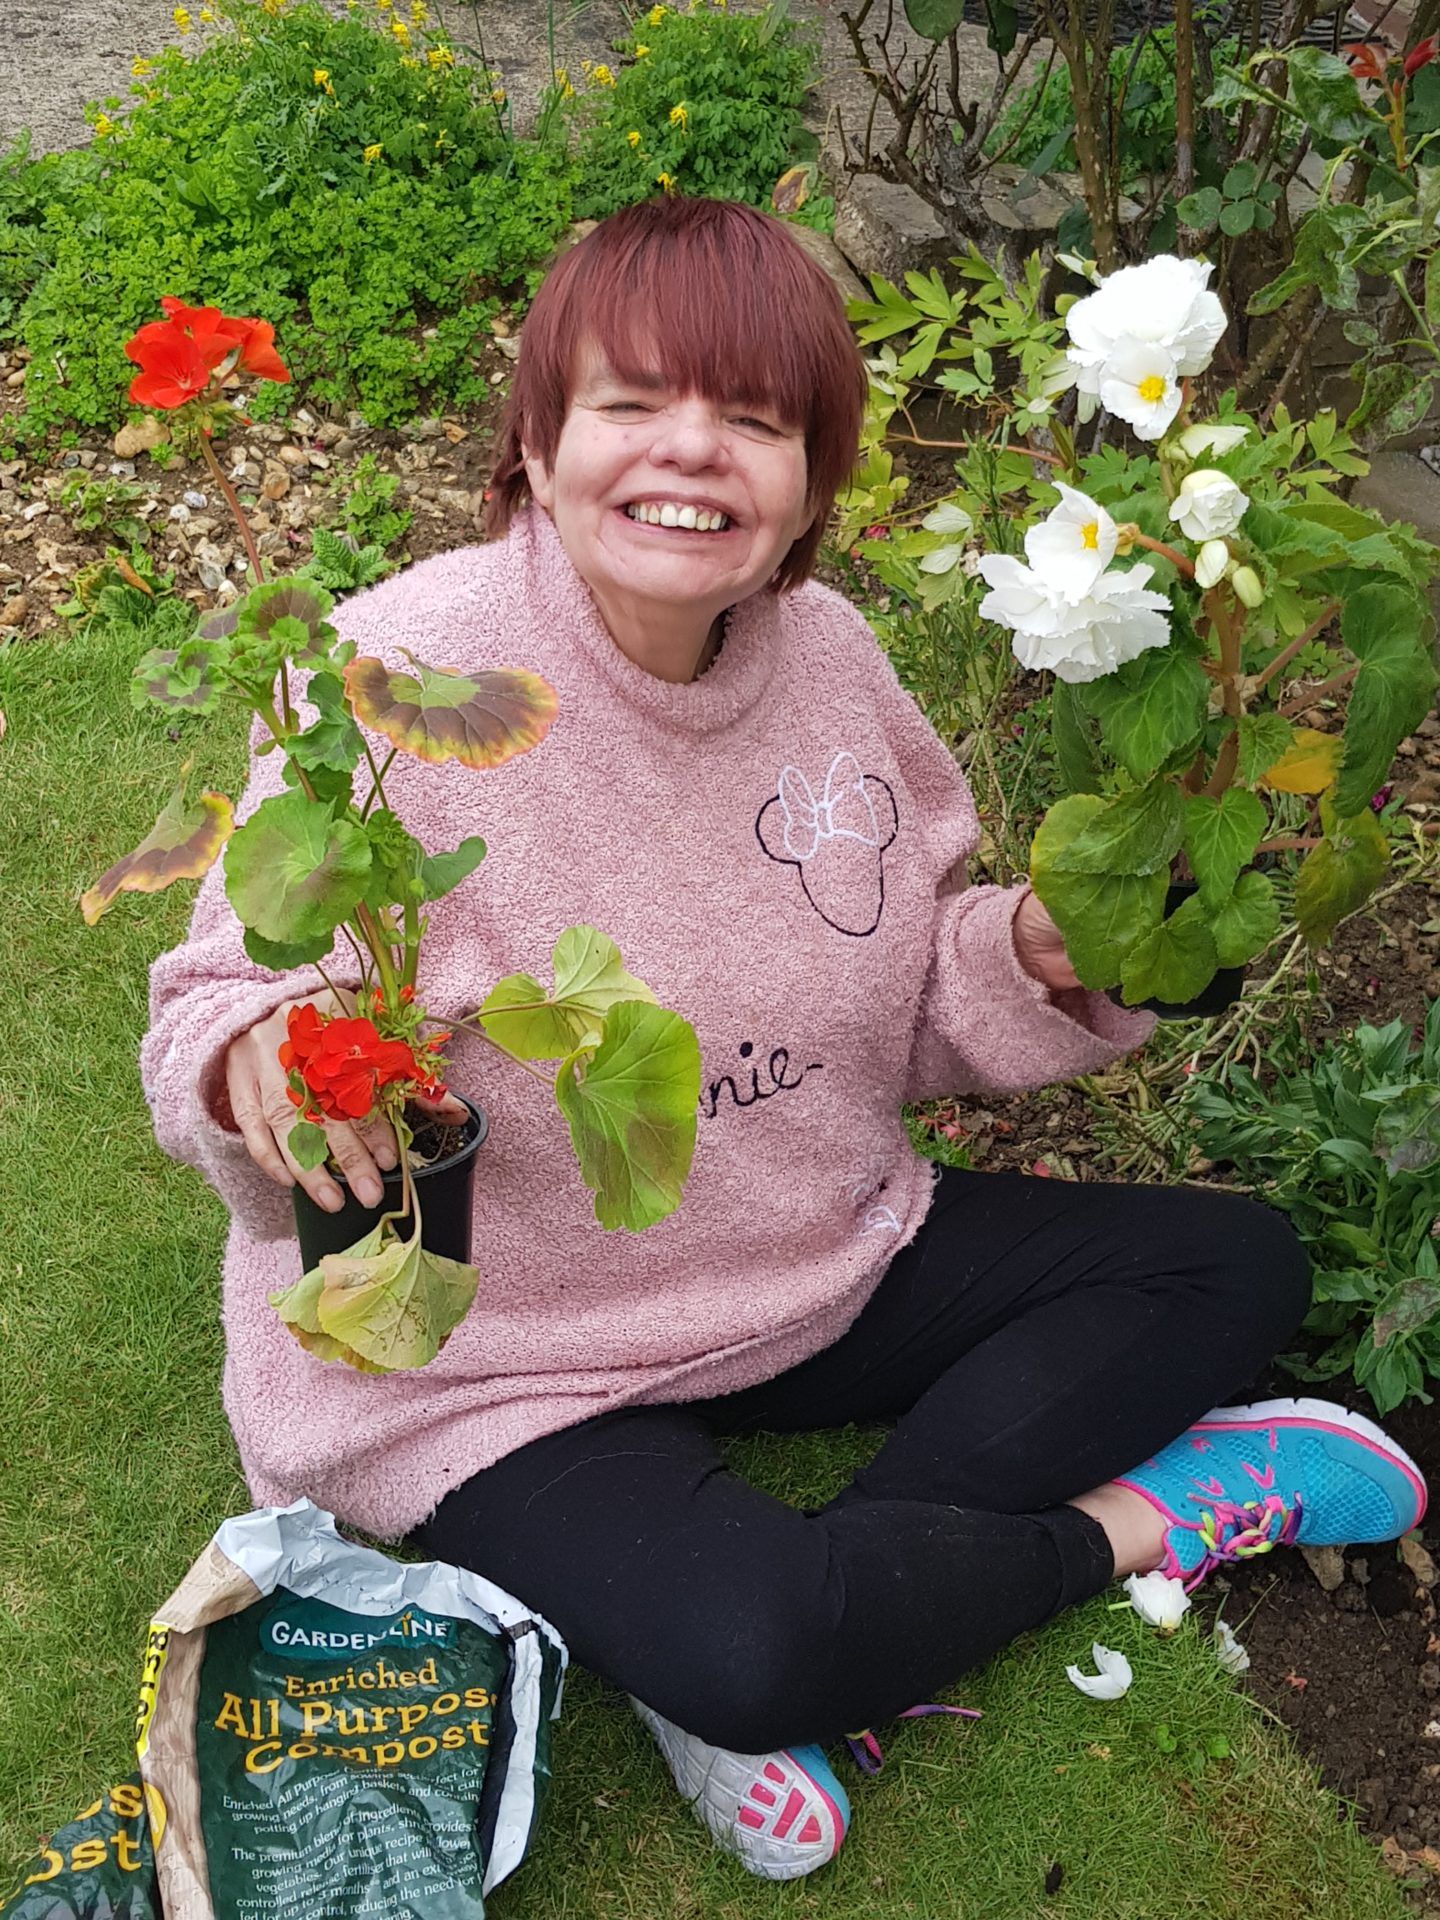 Gardening at Partners In Support